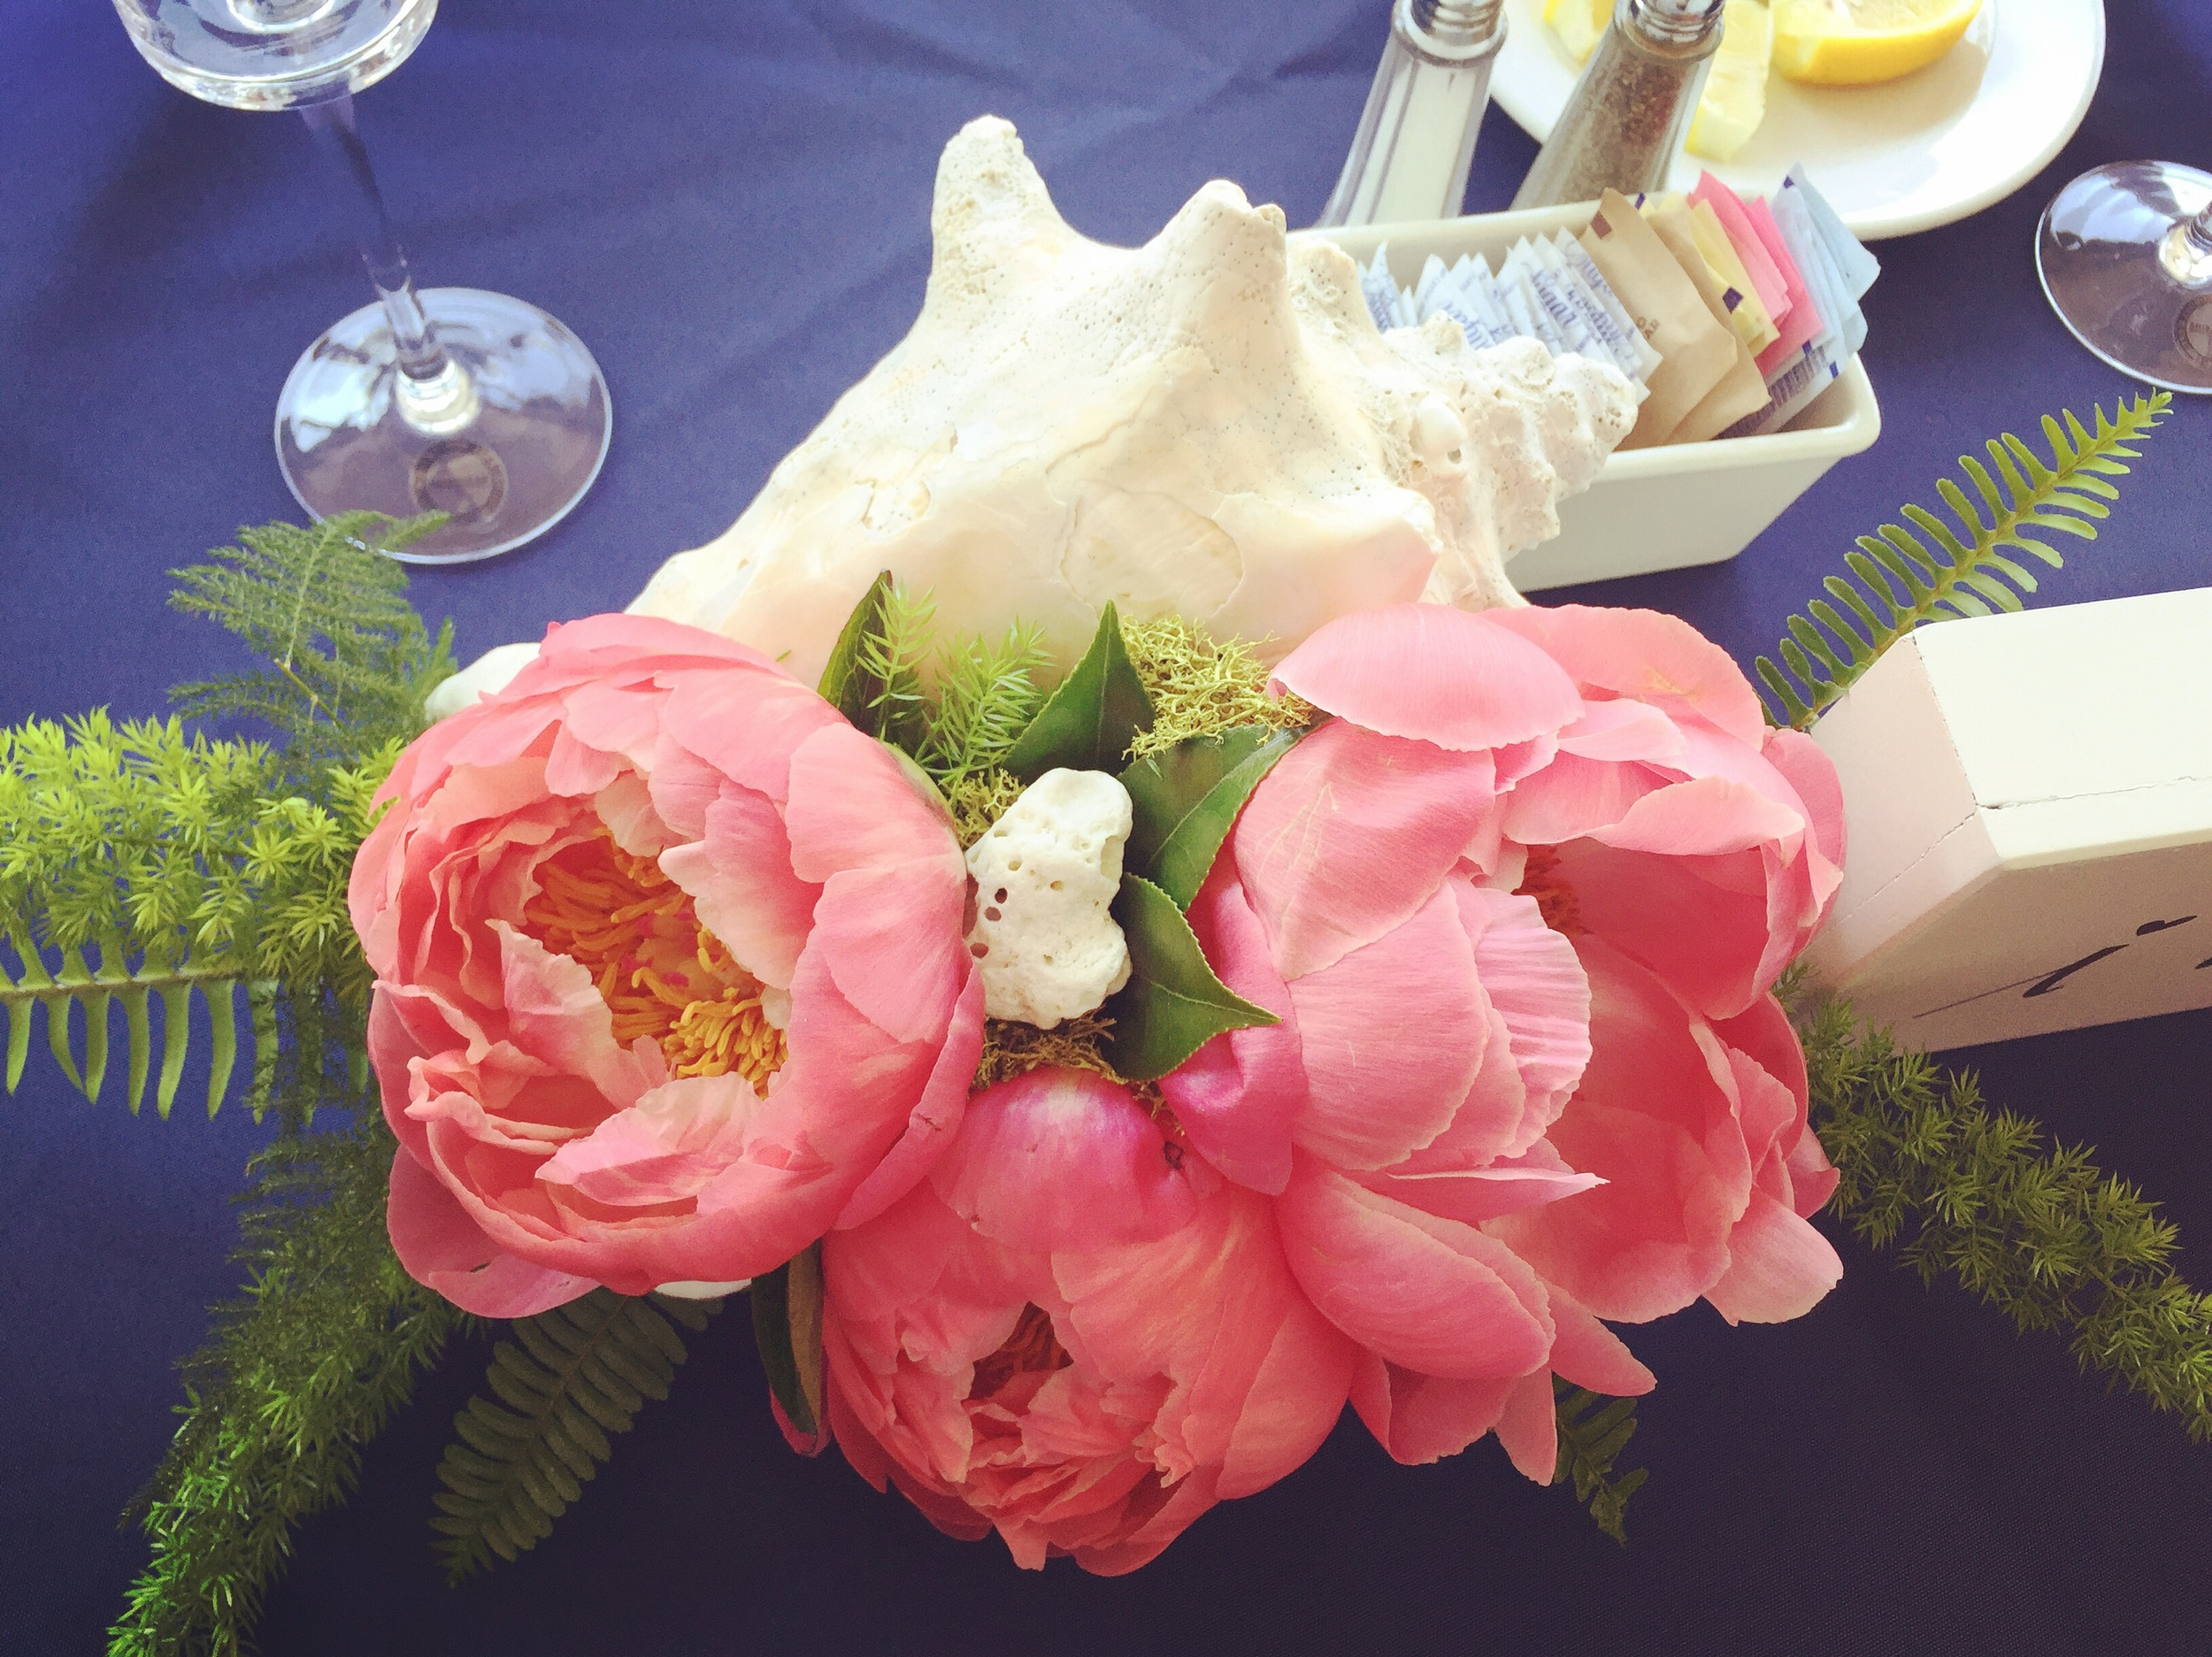 My FAVORITE detail of the day. This conch shell with peonies was made for the sweetheart table. This is something I wish I thought of first, but you can bet I'm going to do my best to make it happen again.